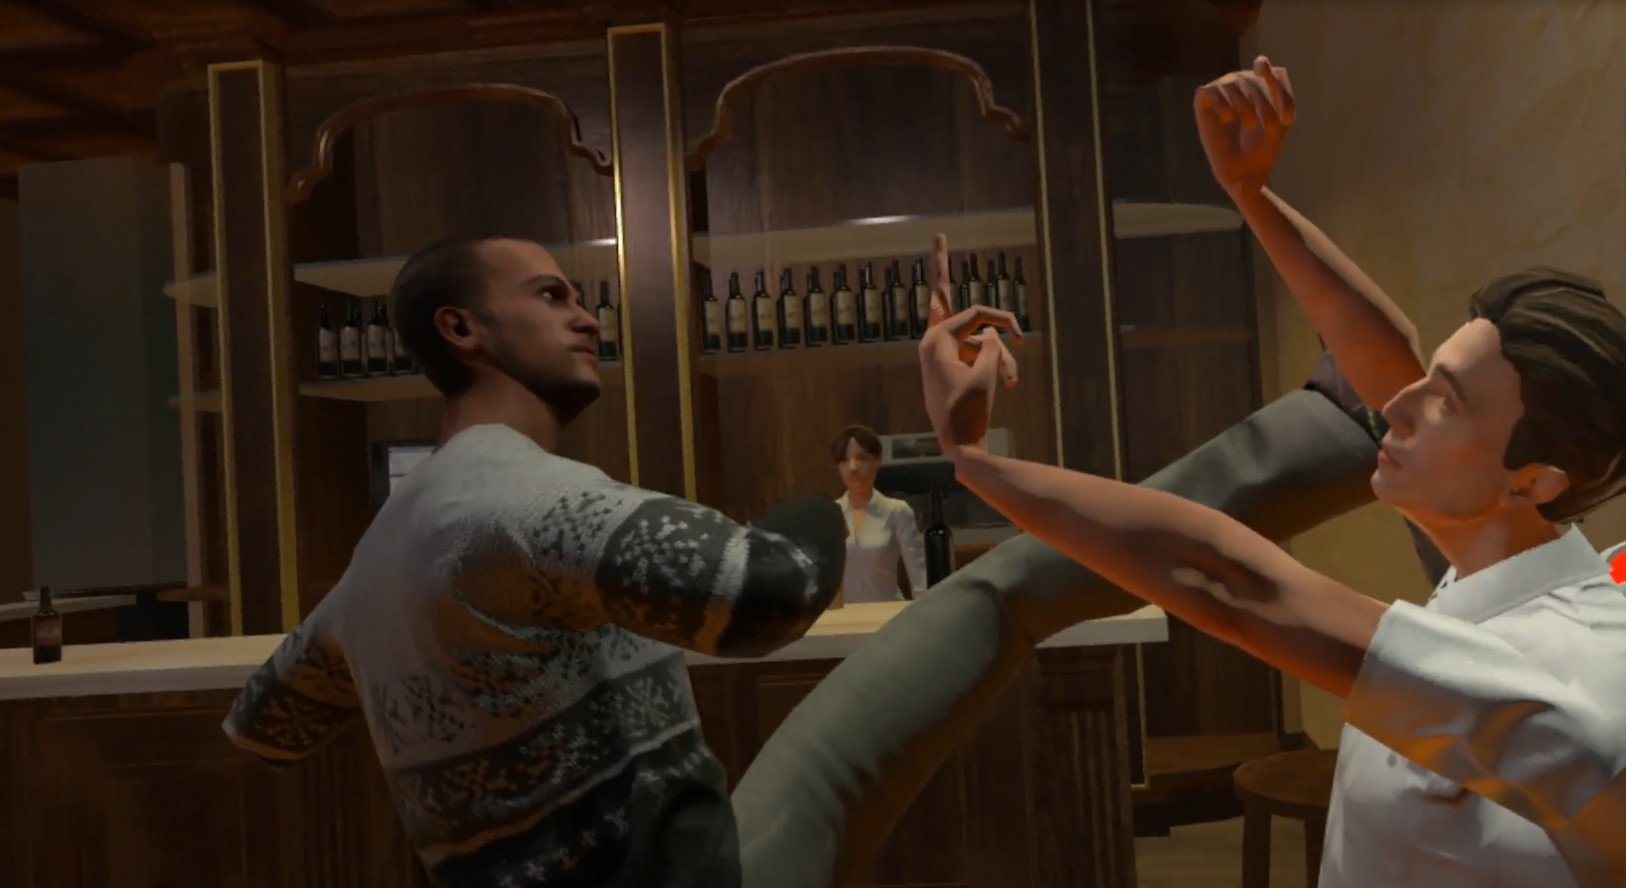 Drunkn Bar Fight Is Looking At A Physical Release In Europe For A Unique Fighting VR Experience